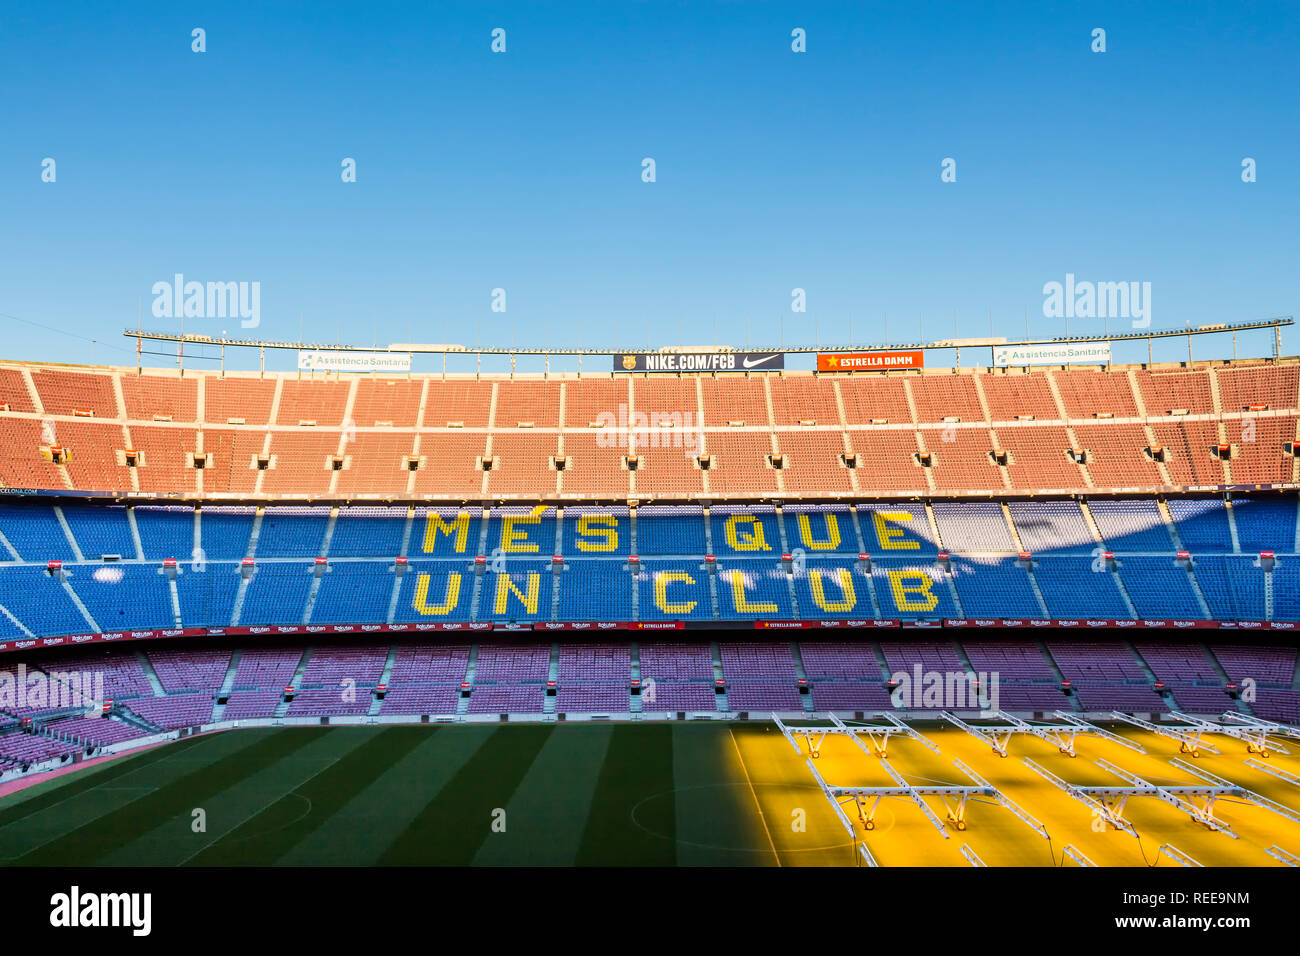 Barcelona - December 2018: Inside Camp Nou - home stadium of FC Barcelona is the largest stadium in Spain and Europe - Stock Image